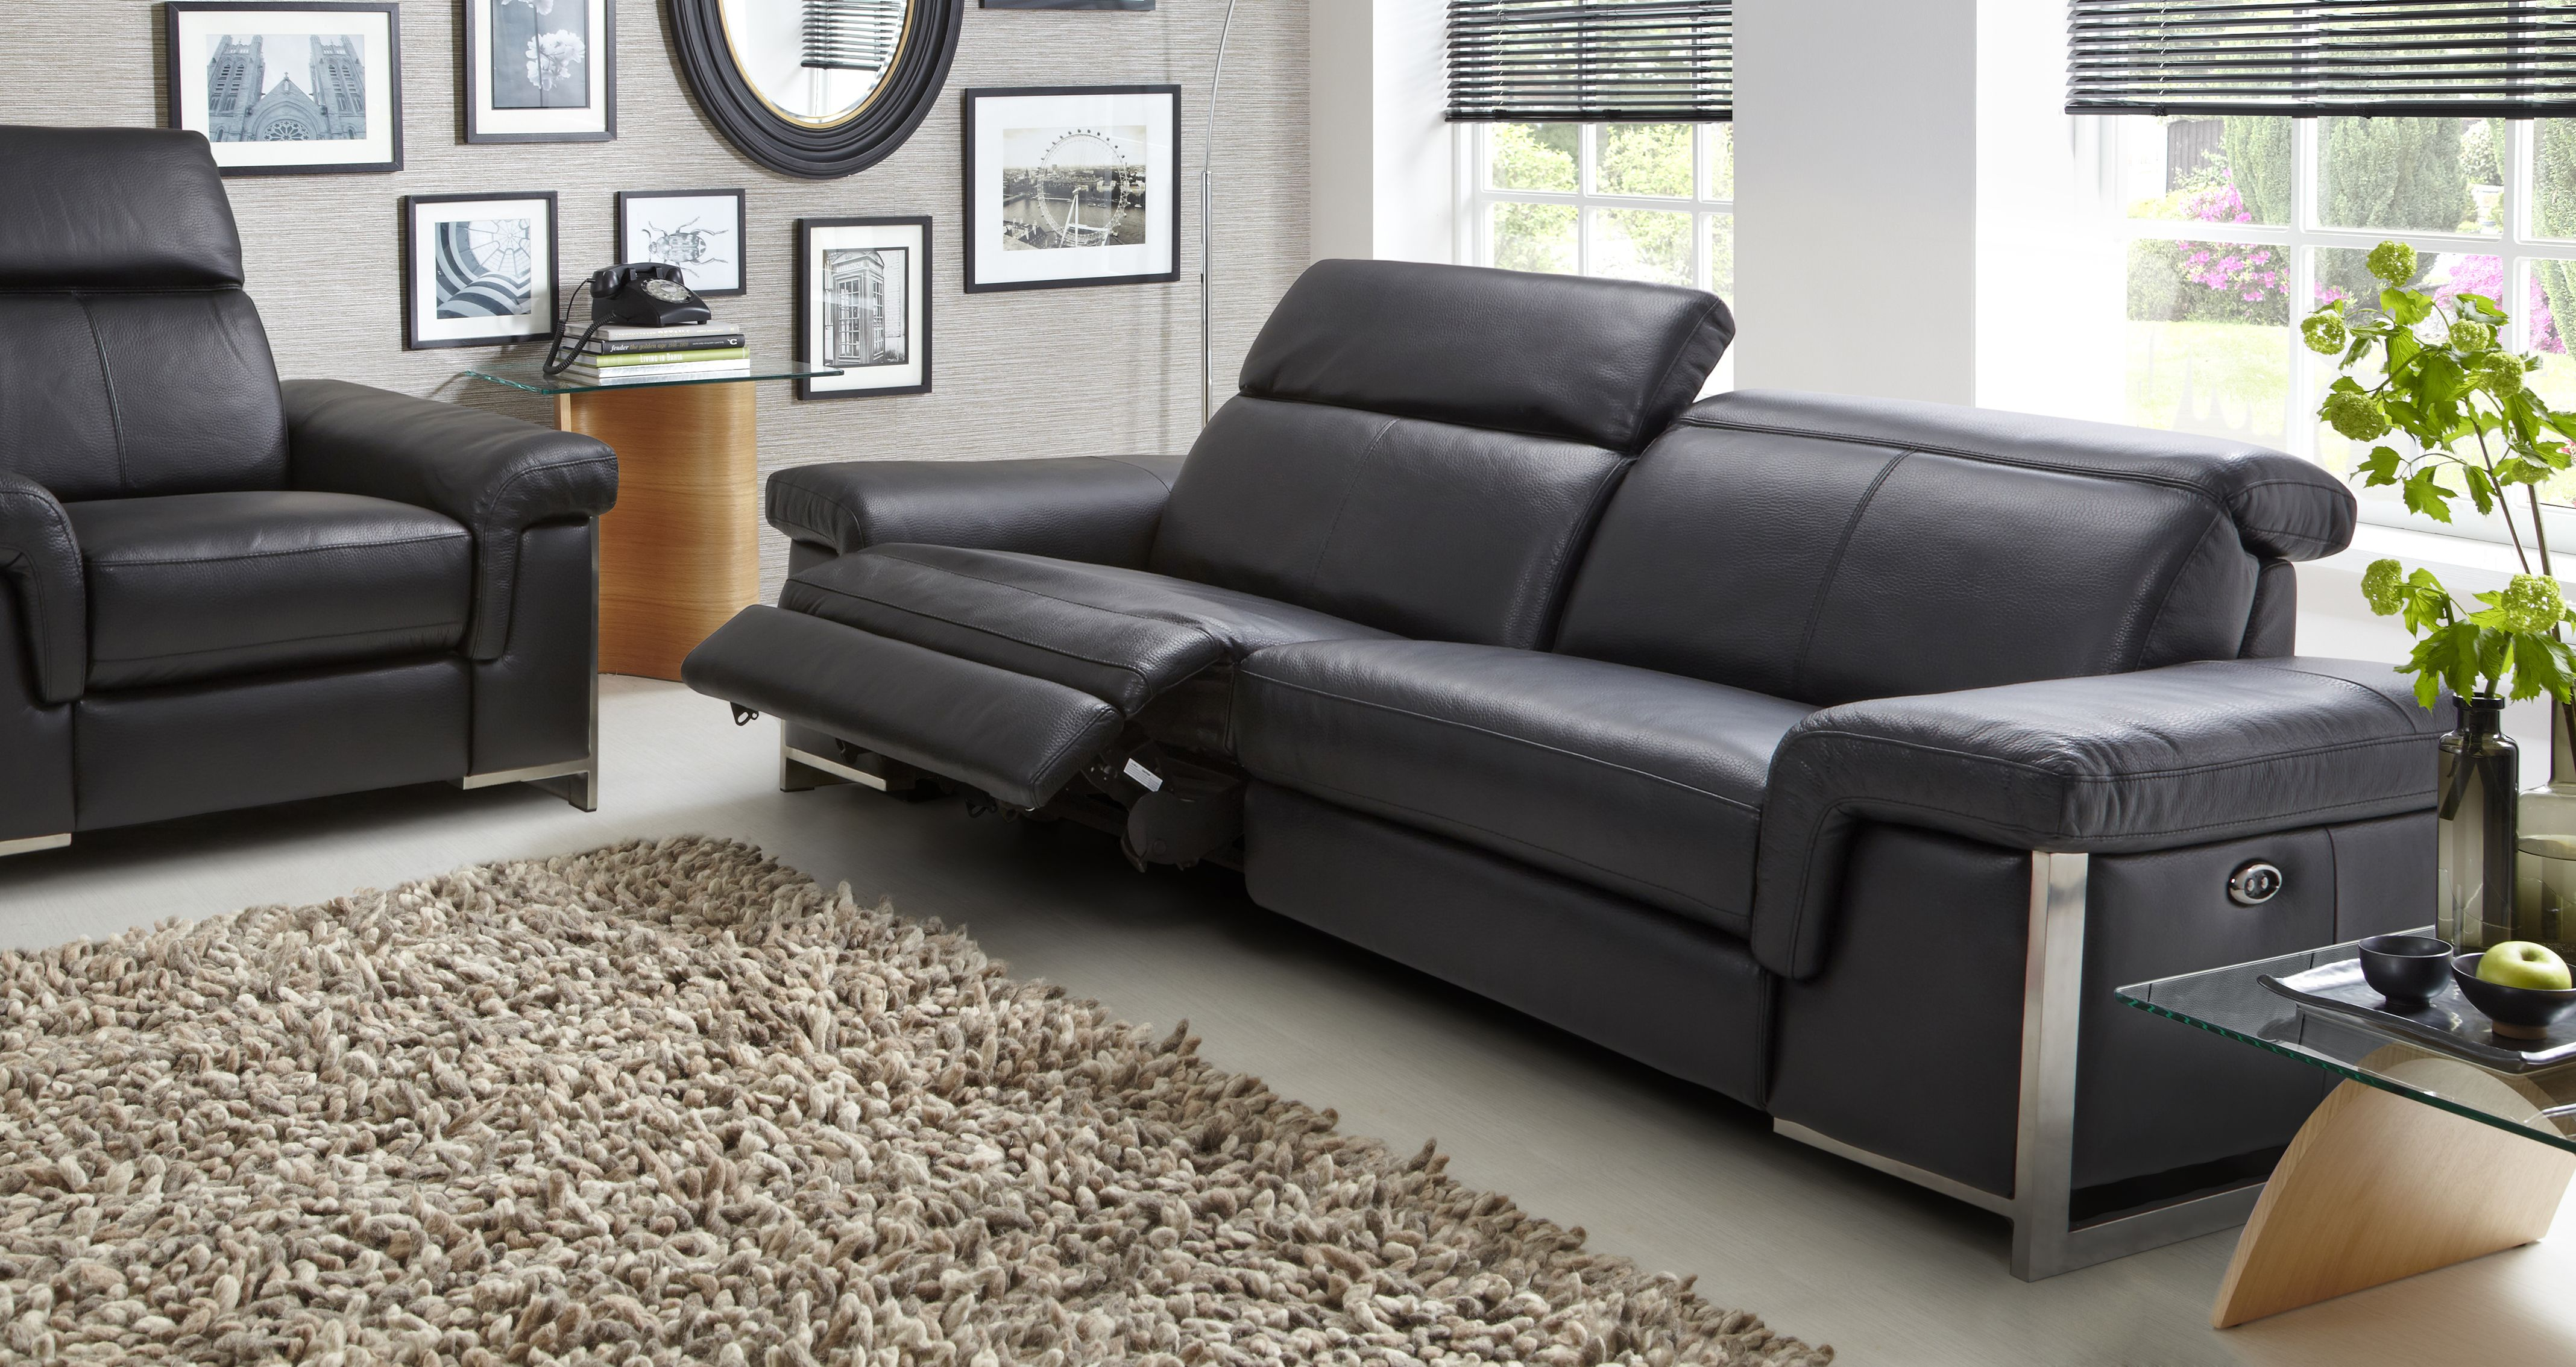 A Stylish Focal Point For Any Living Space The Luxurious Range Is Perfect Dfs SofaLeather ReclinerTv RoomsReclinersSofasFocal